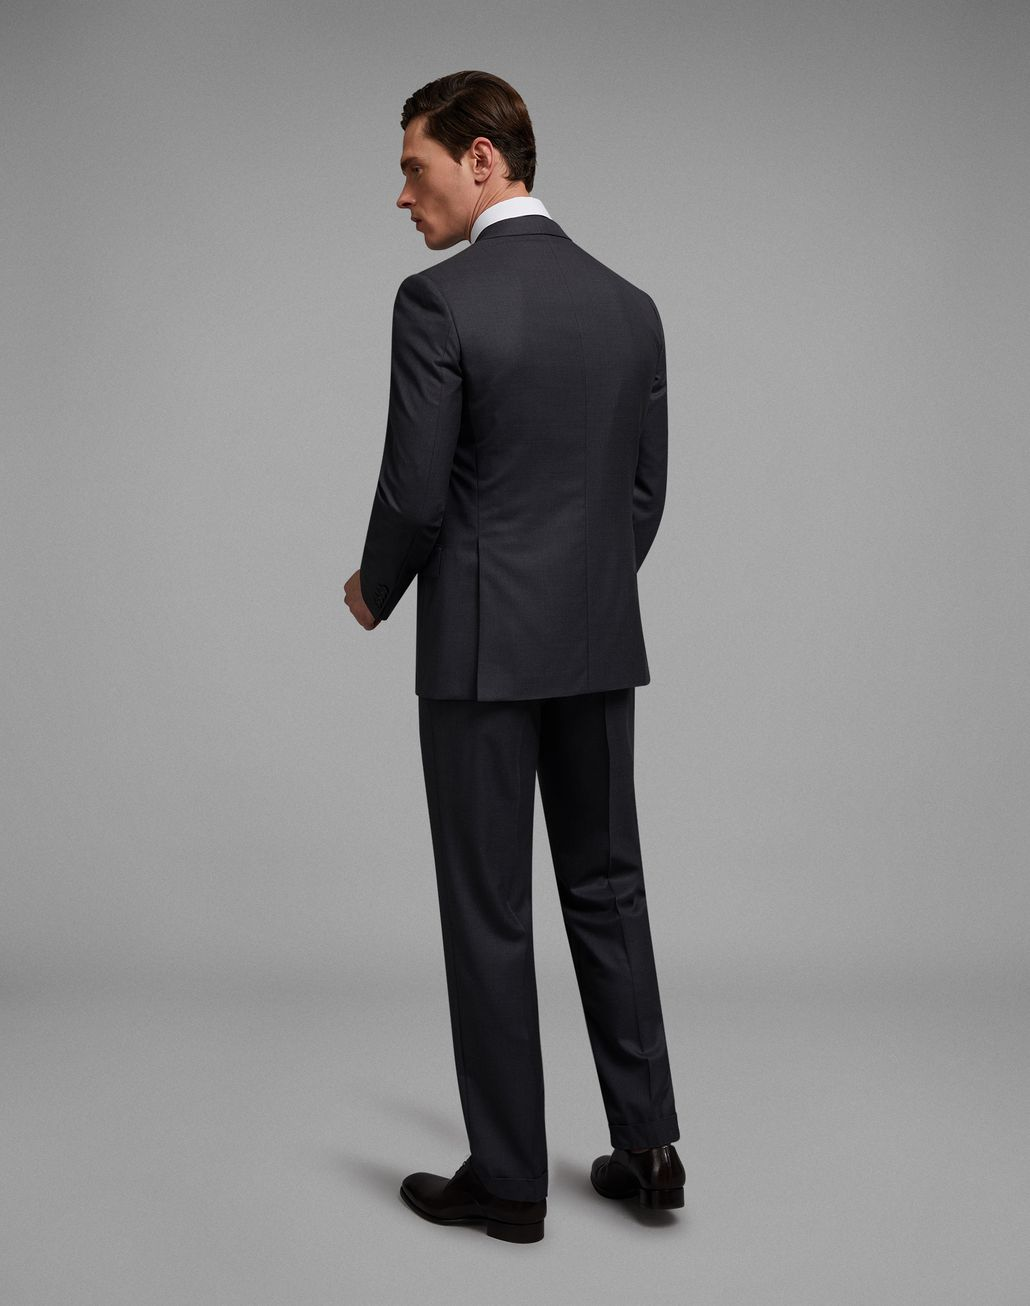 BRIONI Charcoal Brunico Suit Suits & Jackets Man d